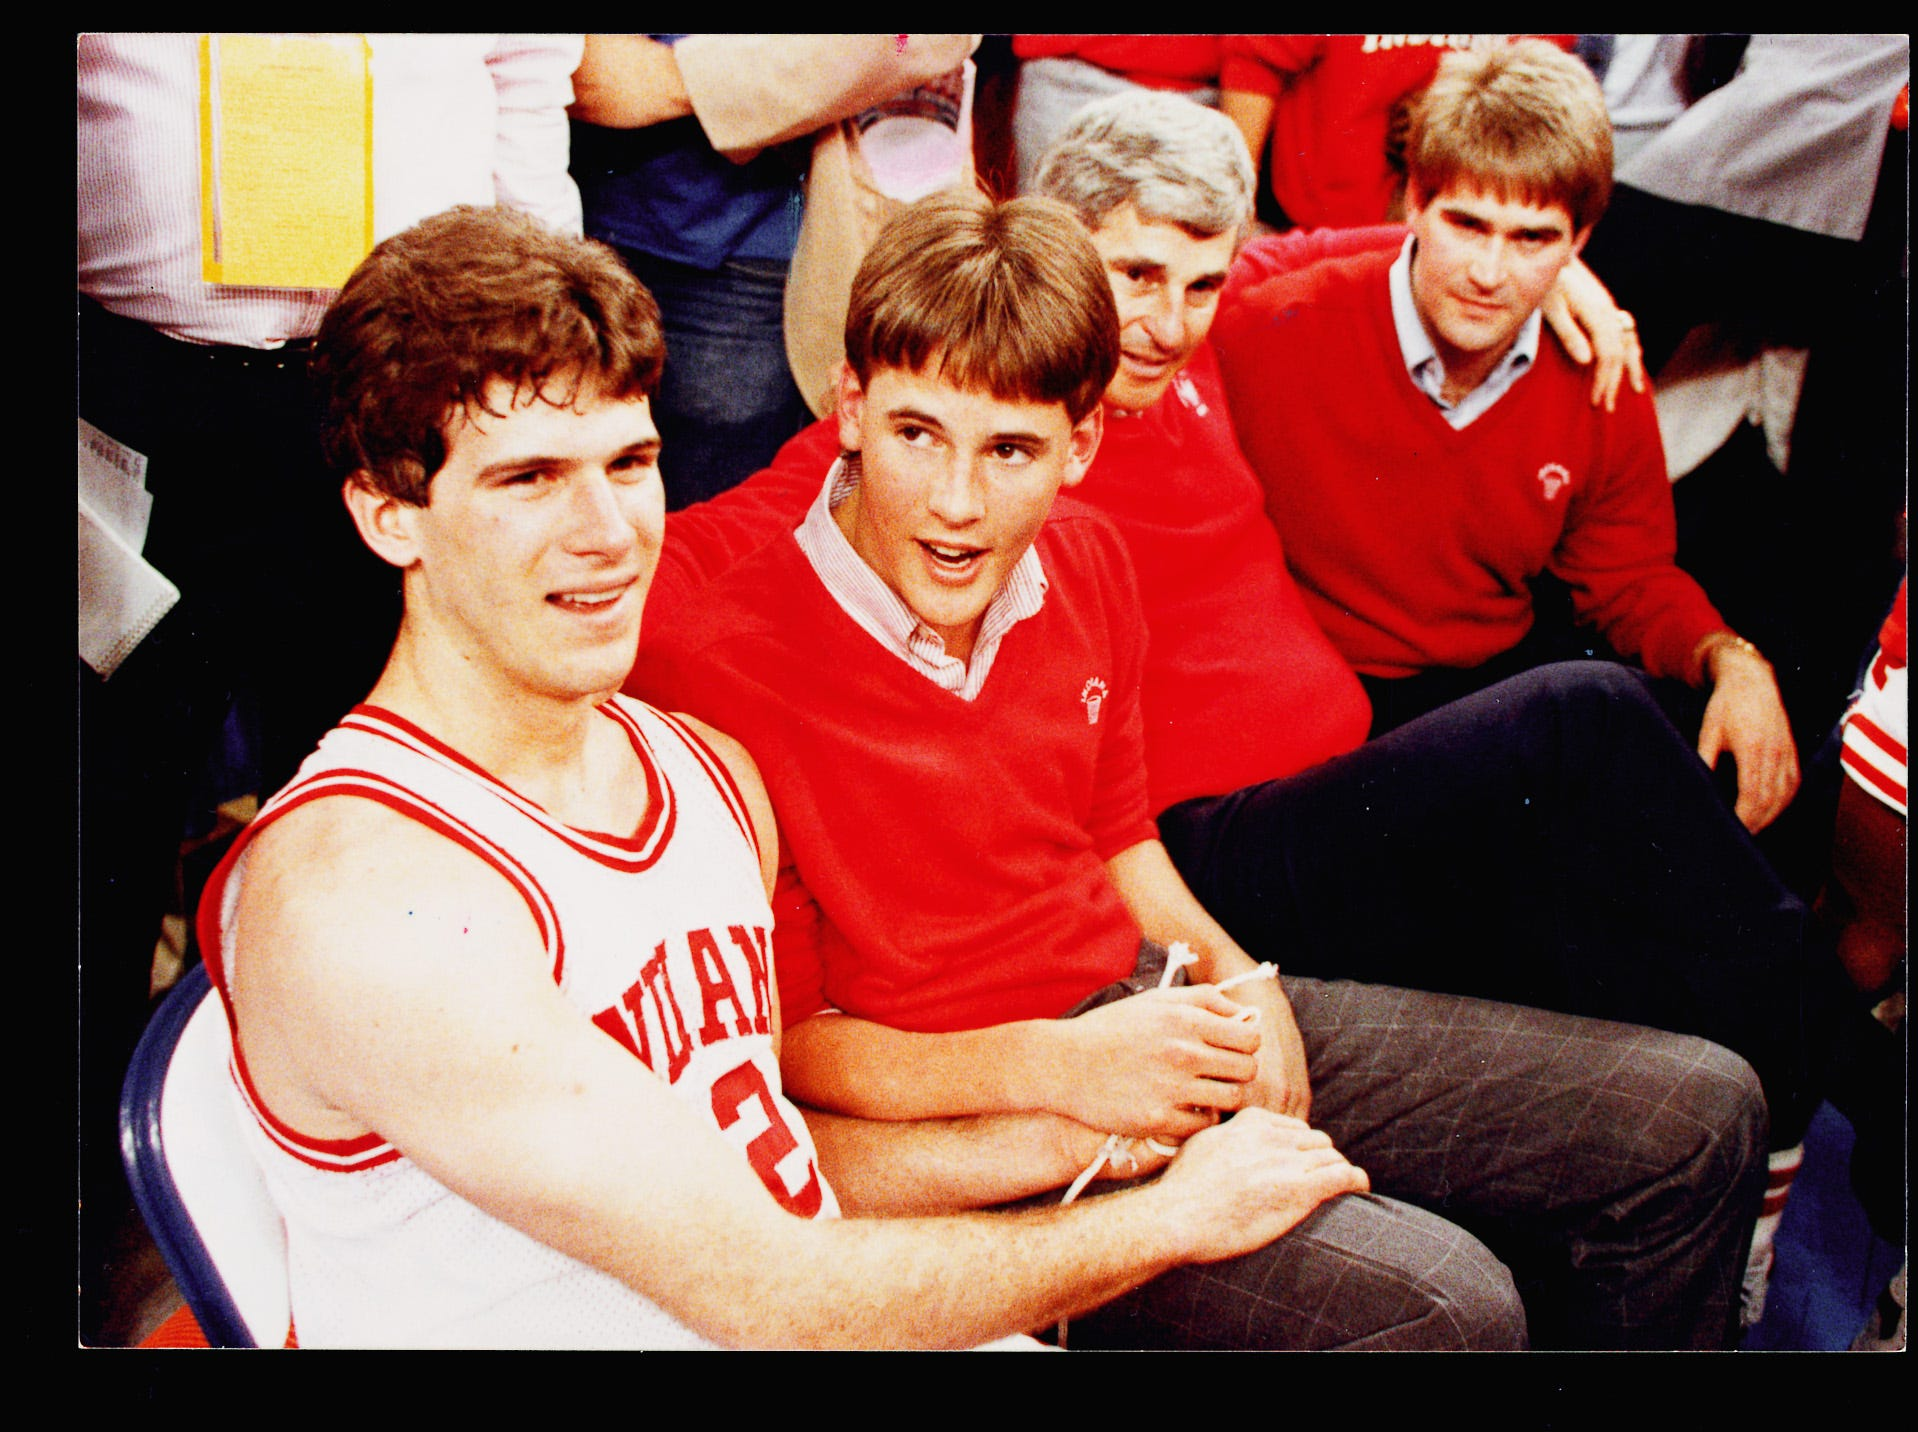 -- Indiana University basketball coach Bobby Knight celebrates National championship in 1987 with Steve Alford (left) and sons Pat and Tim (right).